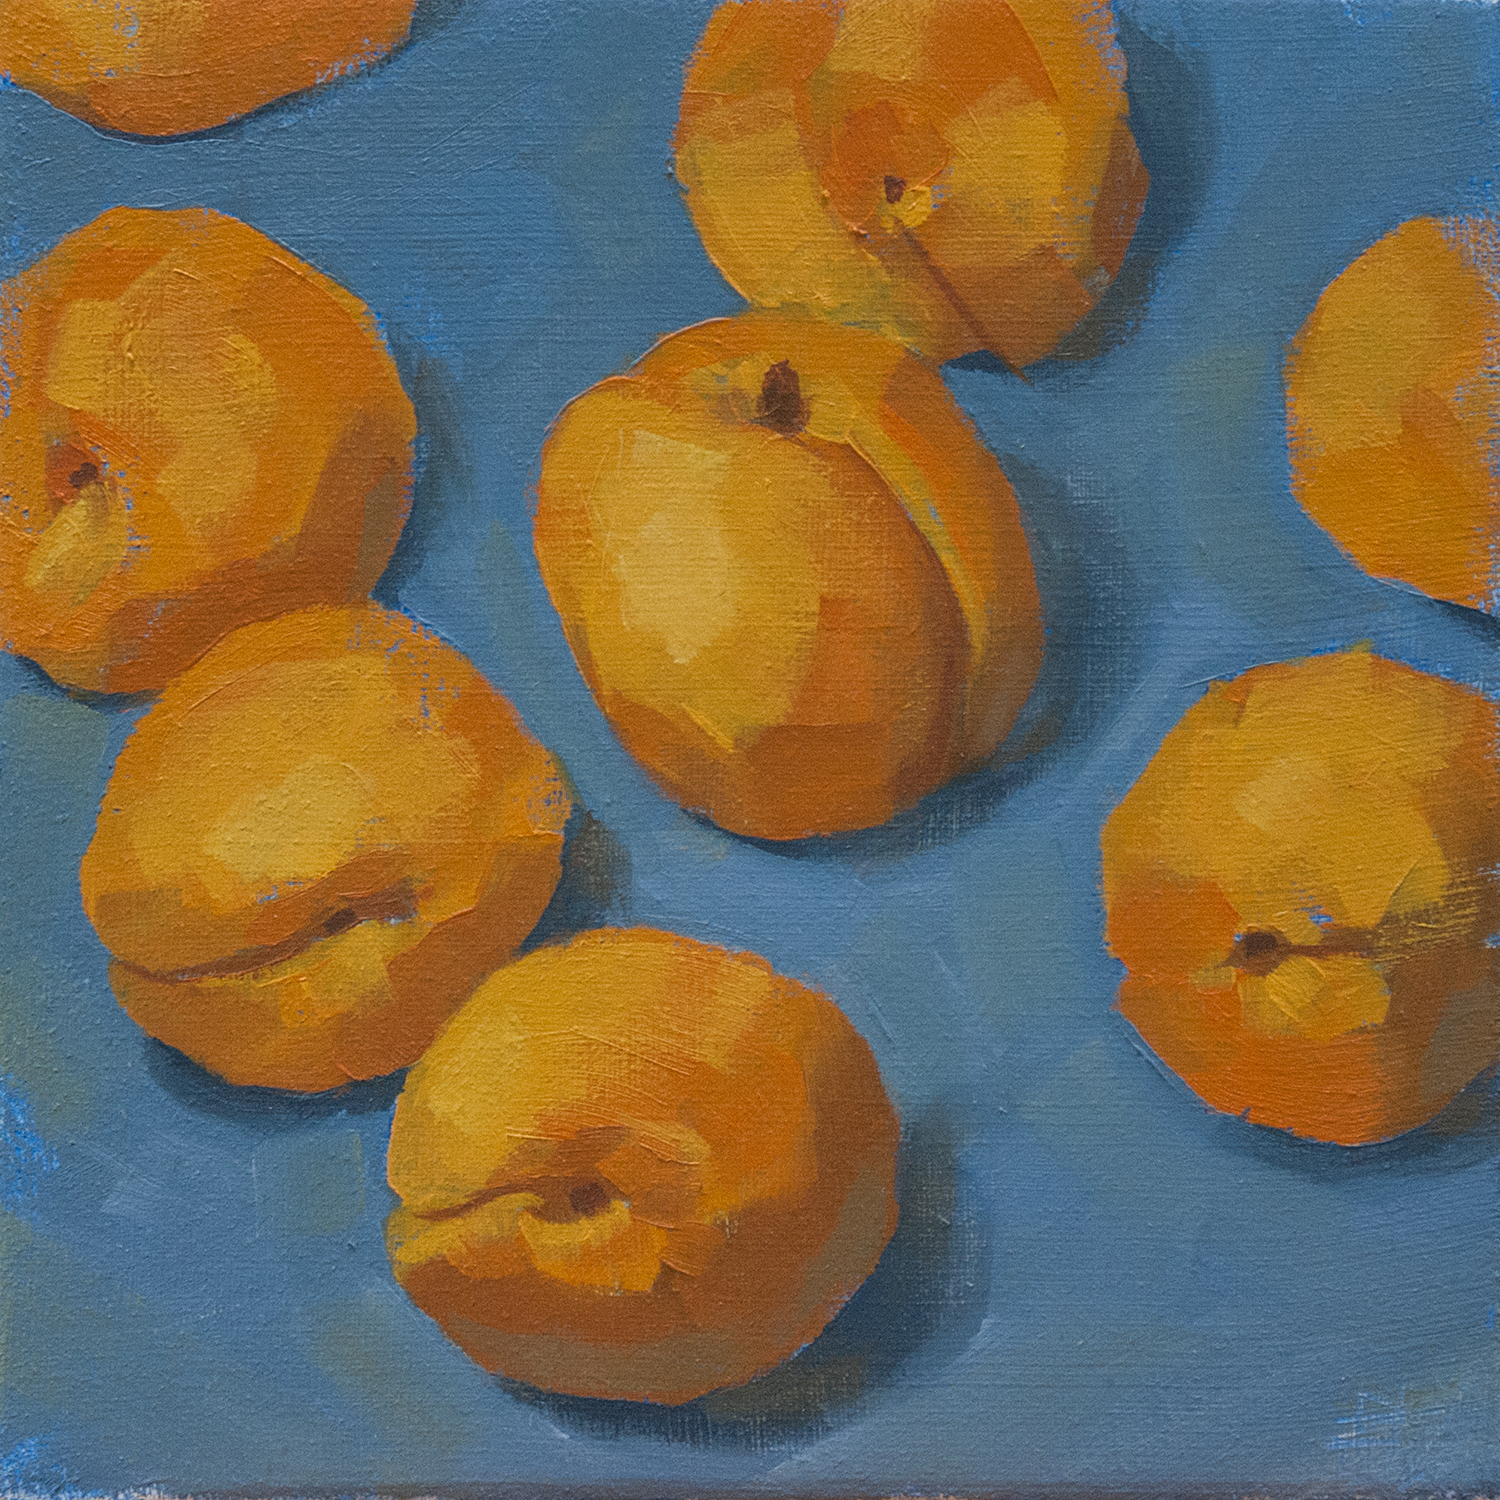 Incubating Apricots by Rob Lunn